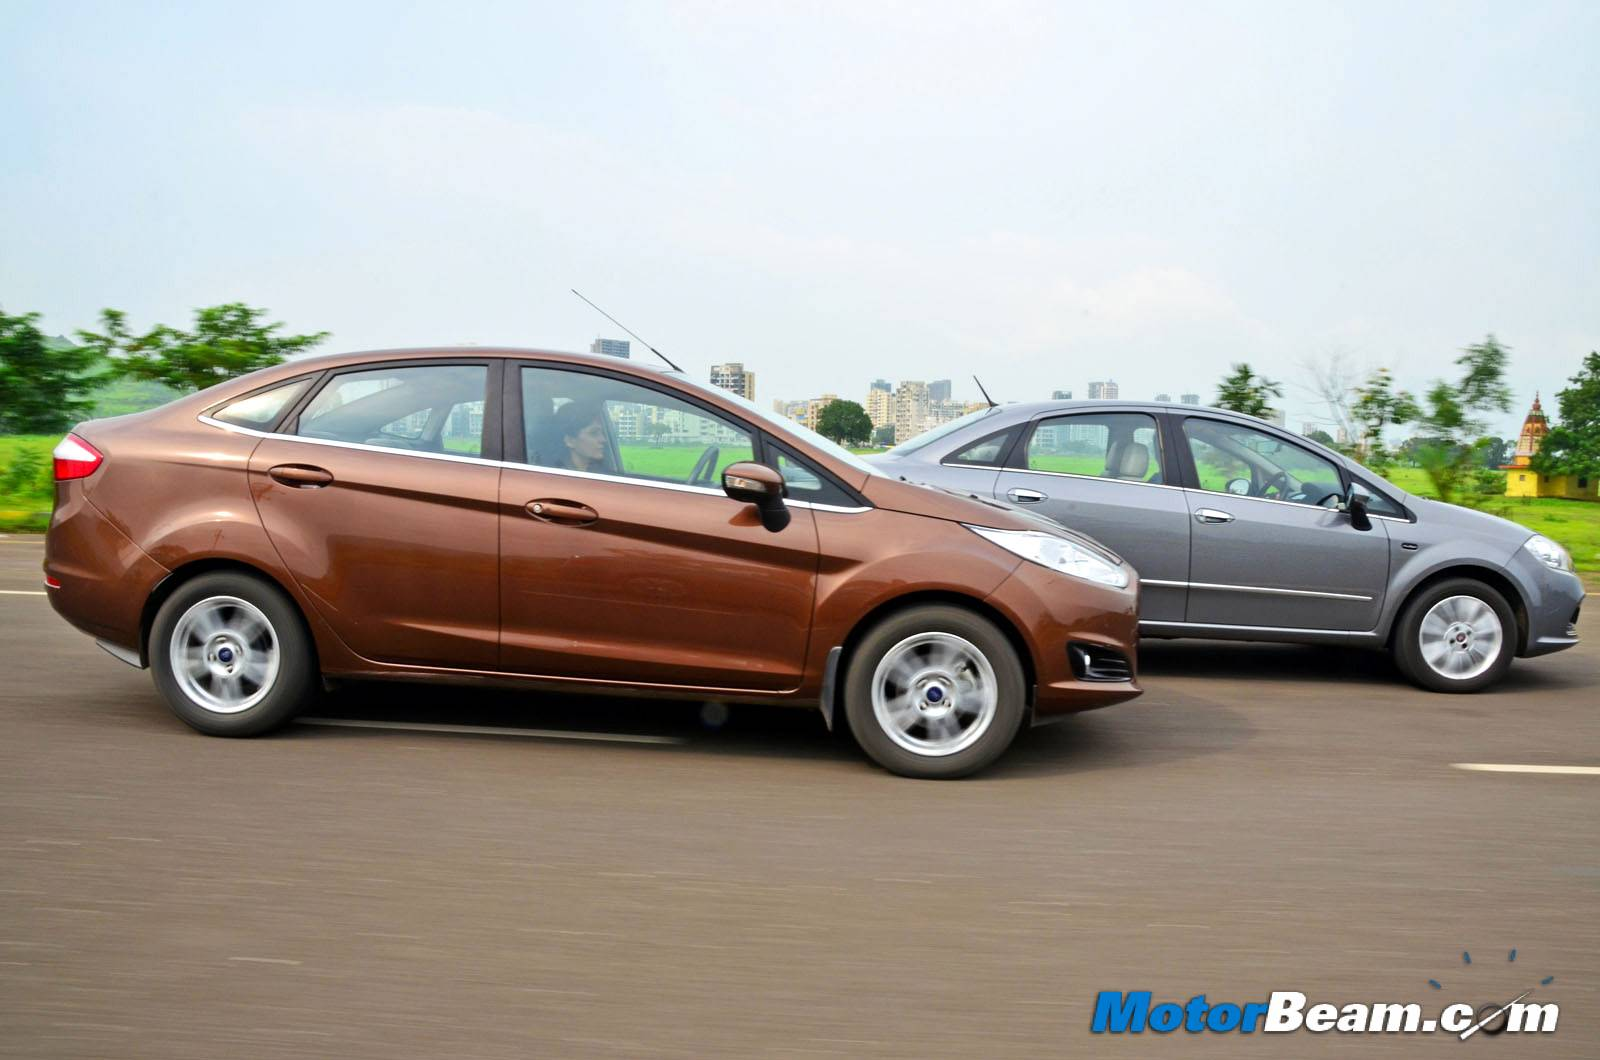 2014 Ford Fiesta vs Fiat Linea